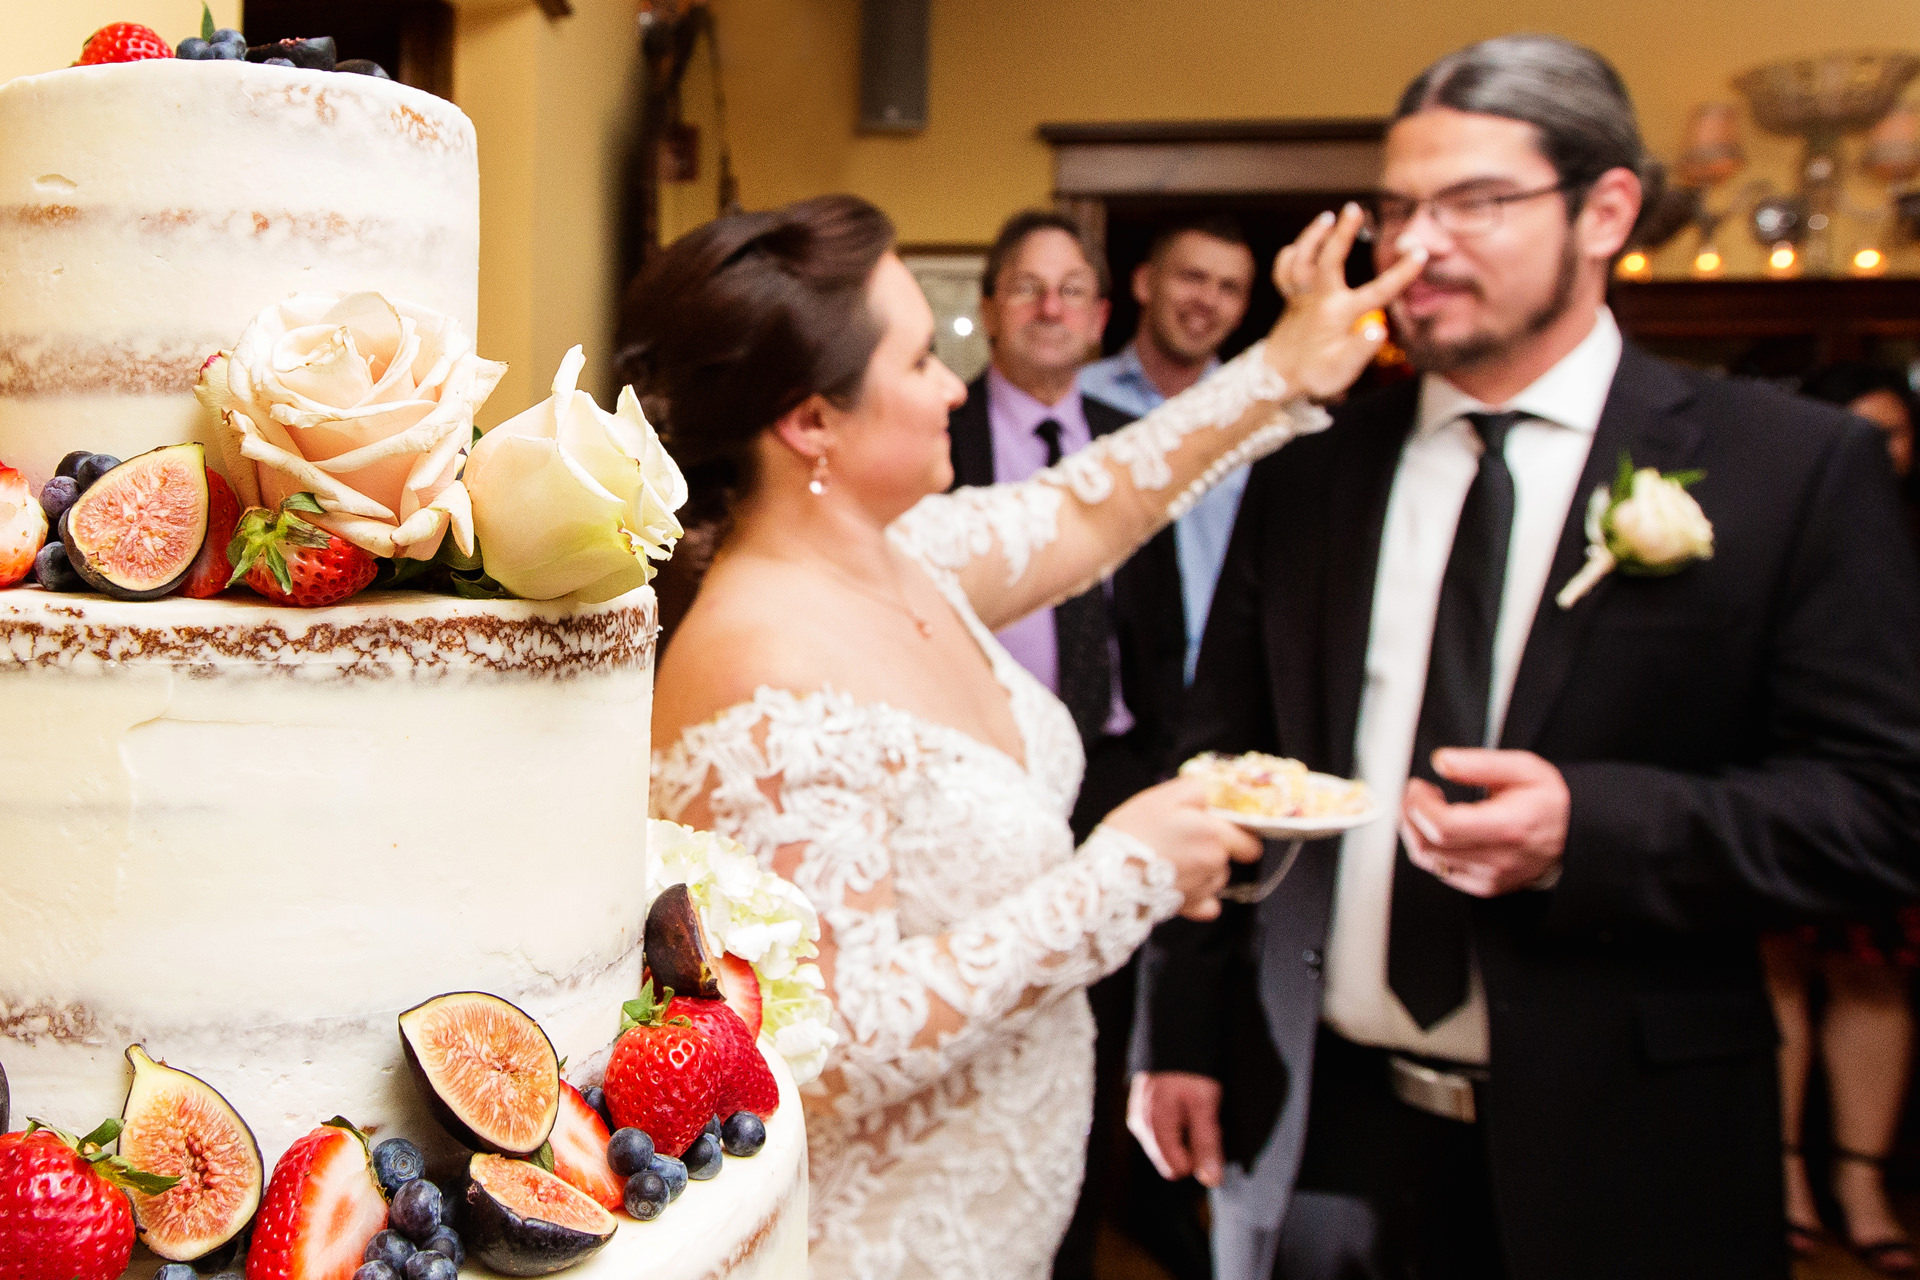 NJ Wedding Venue Photography - The Gables Inn | The bride places some cake on the grooms nose